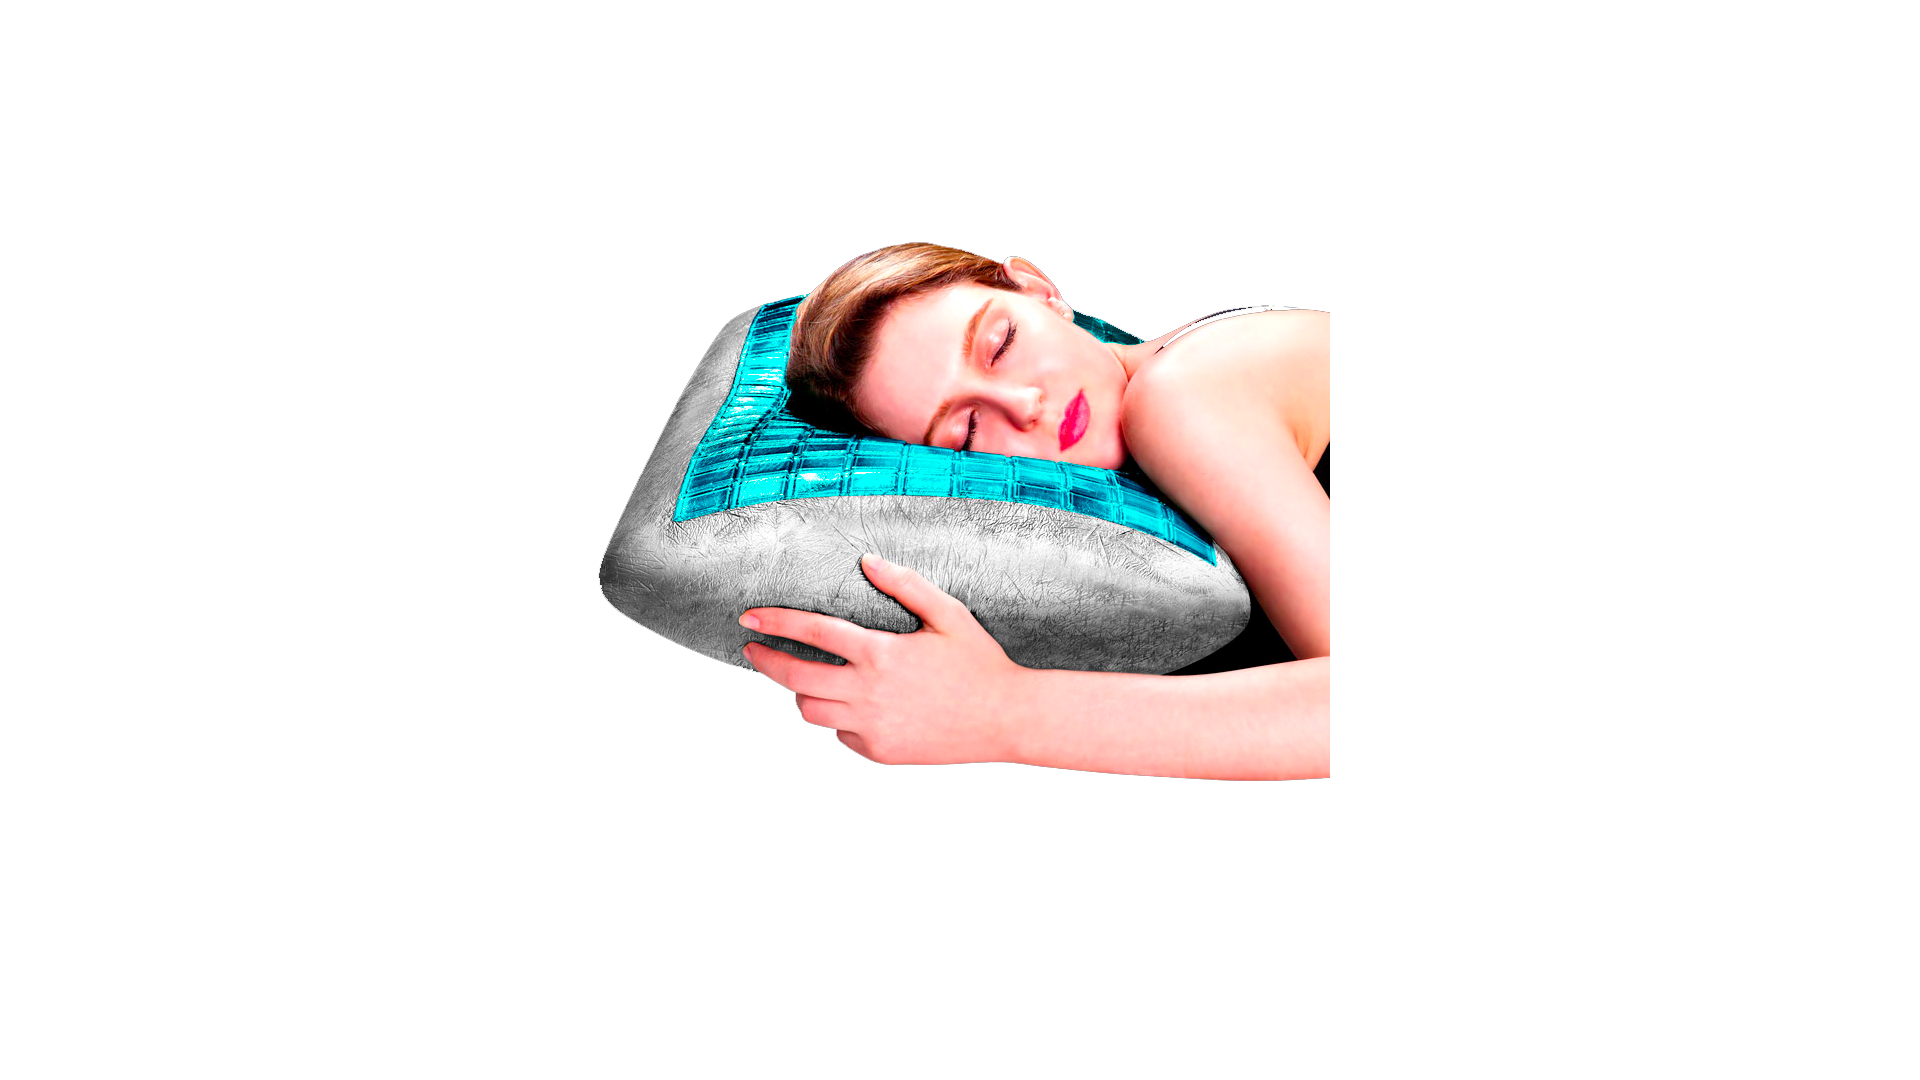 JAHVERY gel pillow deals with insomnia particularly and makes you sleep more comfortably.